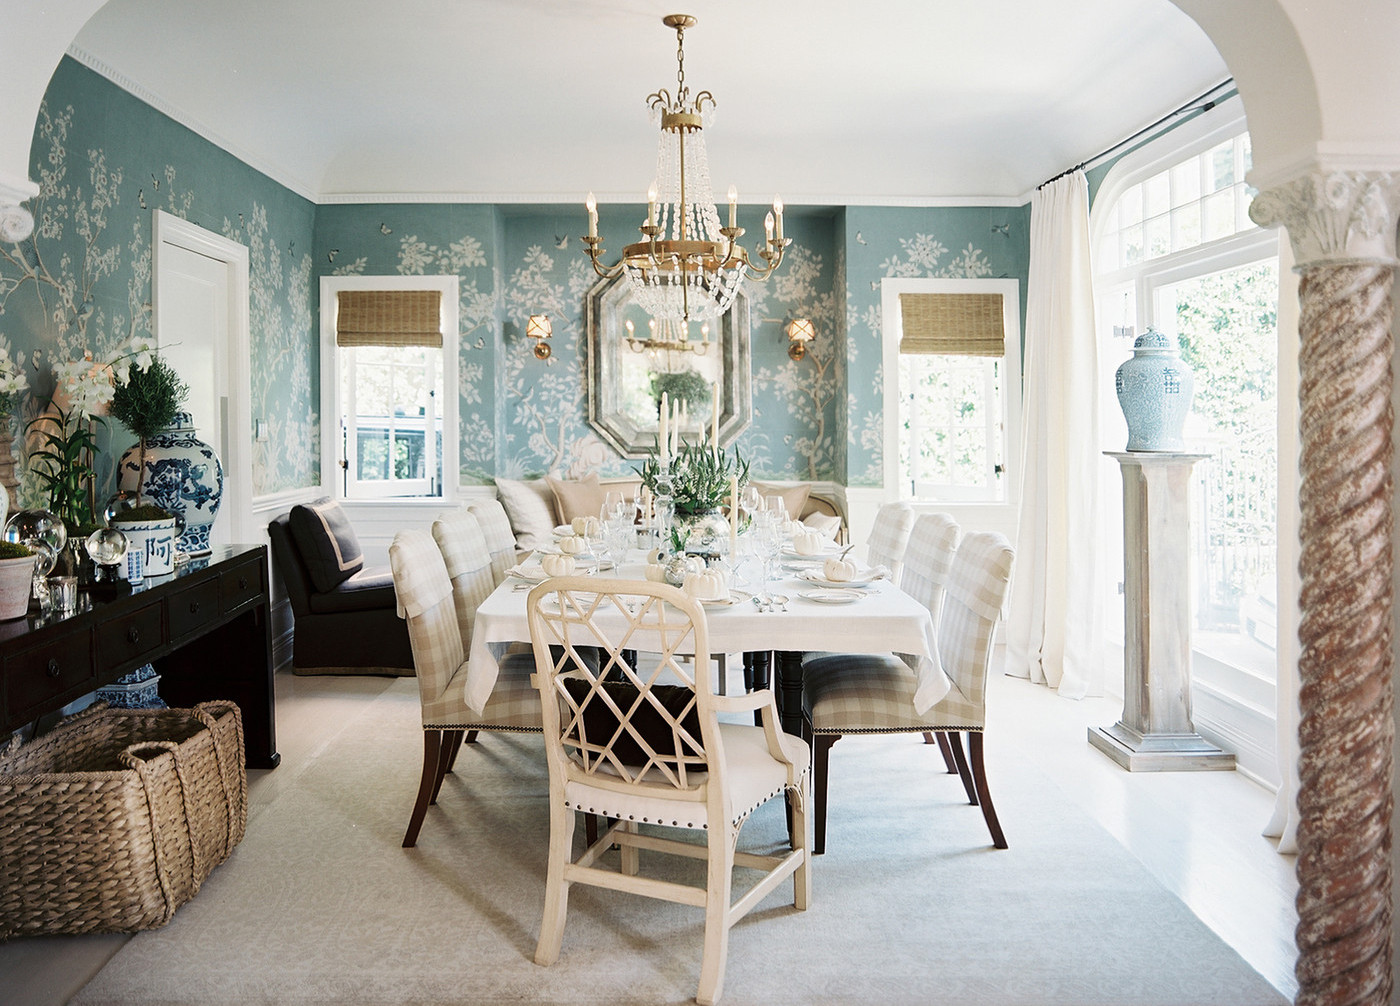 A serene dinner party at the Southern California home of Mark D. Sikes and Michael Griffin.